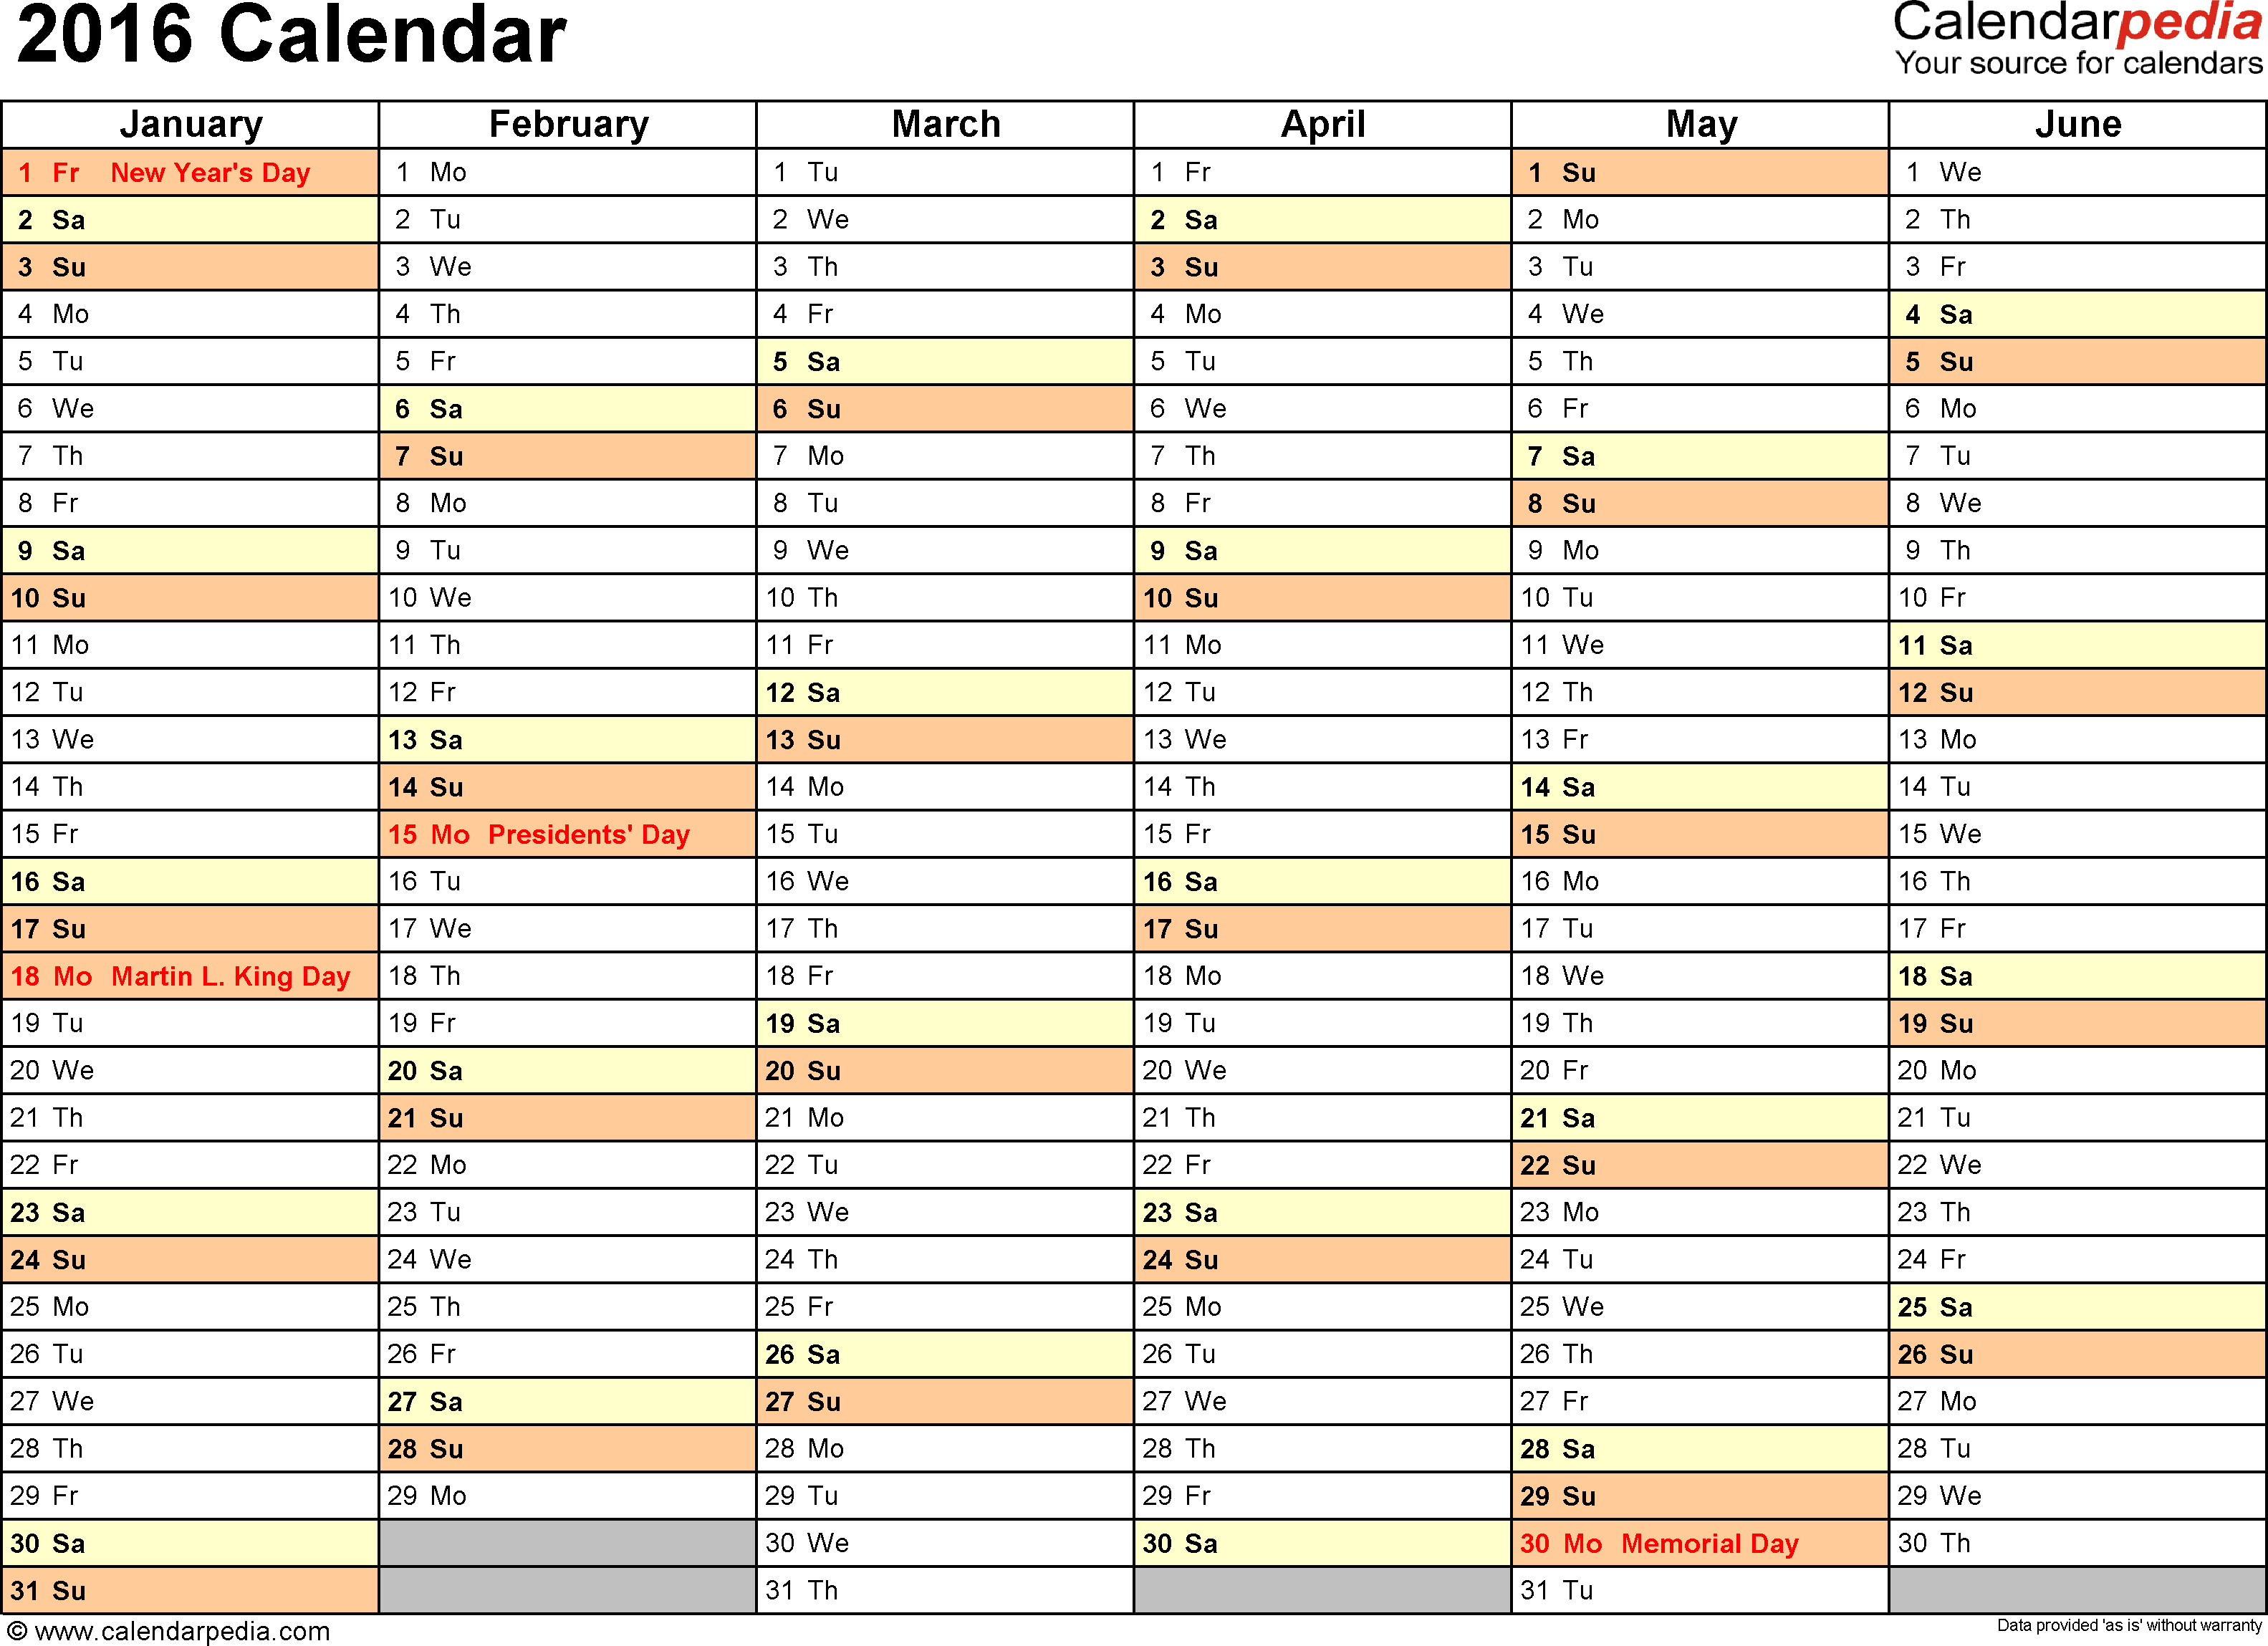 2016 Calendar - Download 16 Free Printable Excel Templates